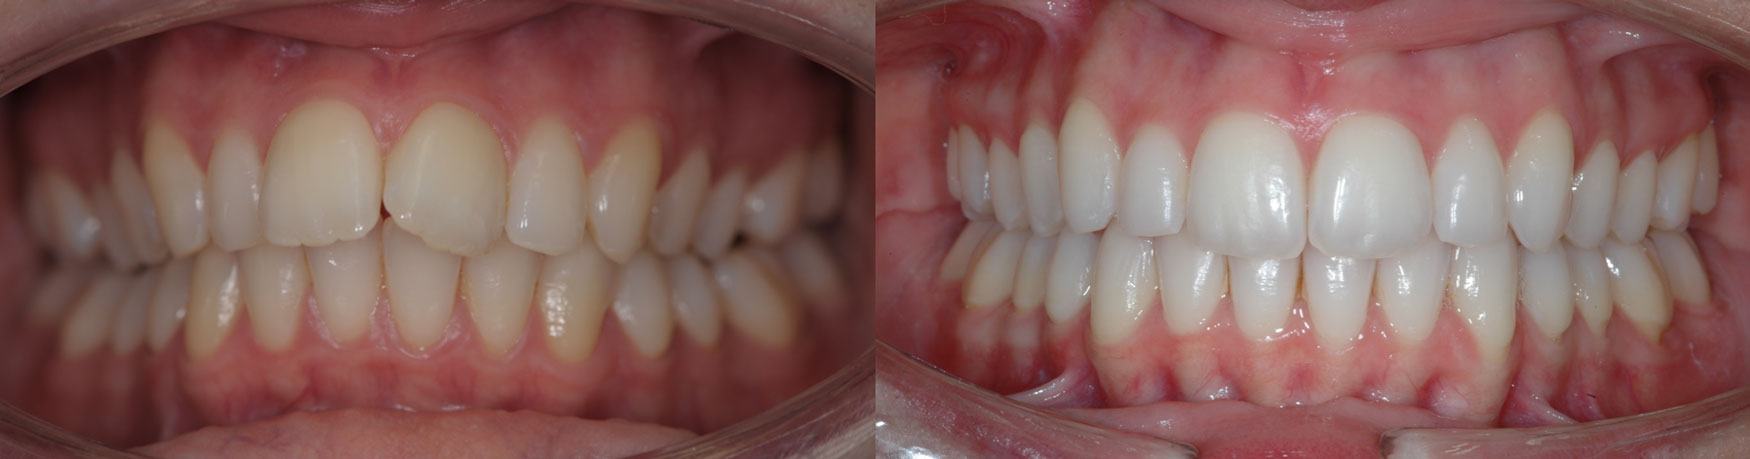 Invisalign-Before-After-13.jpg